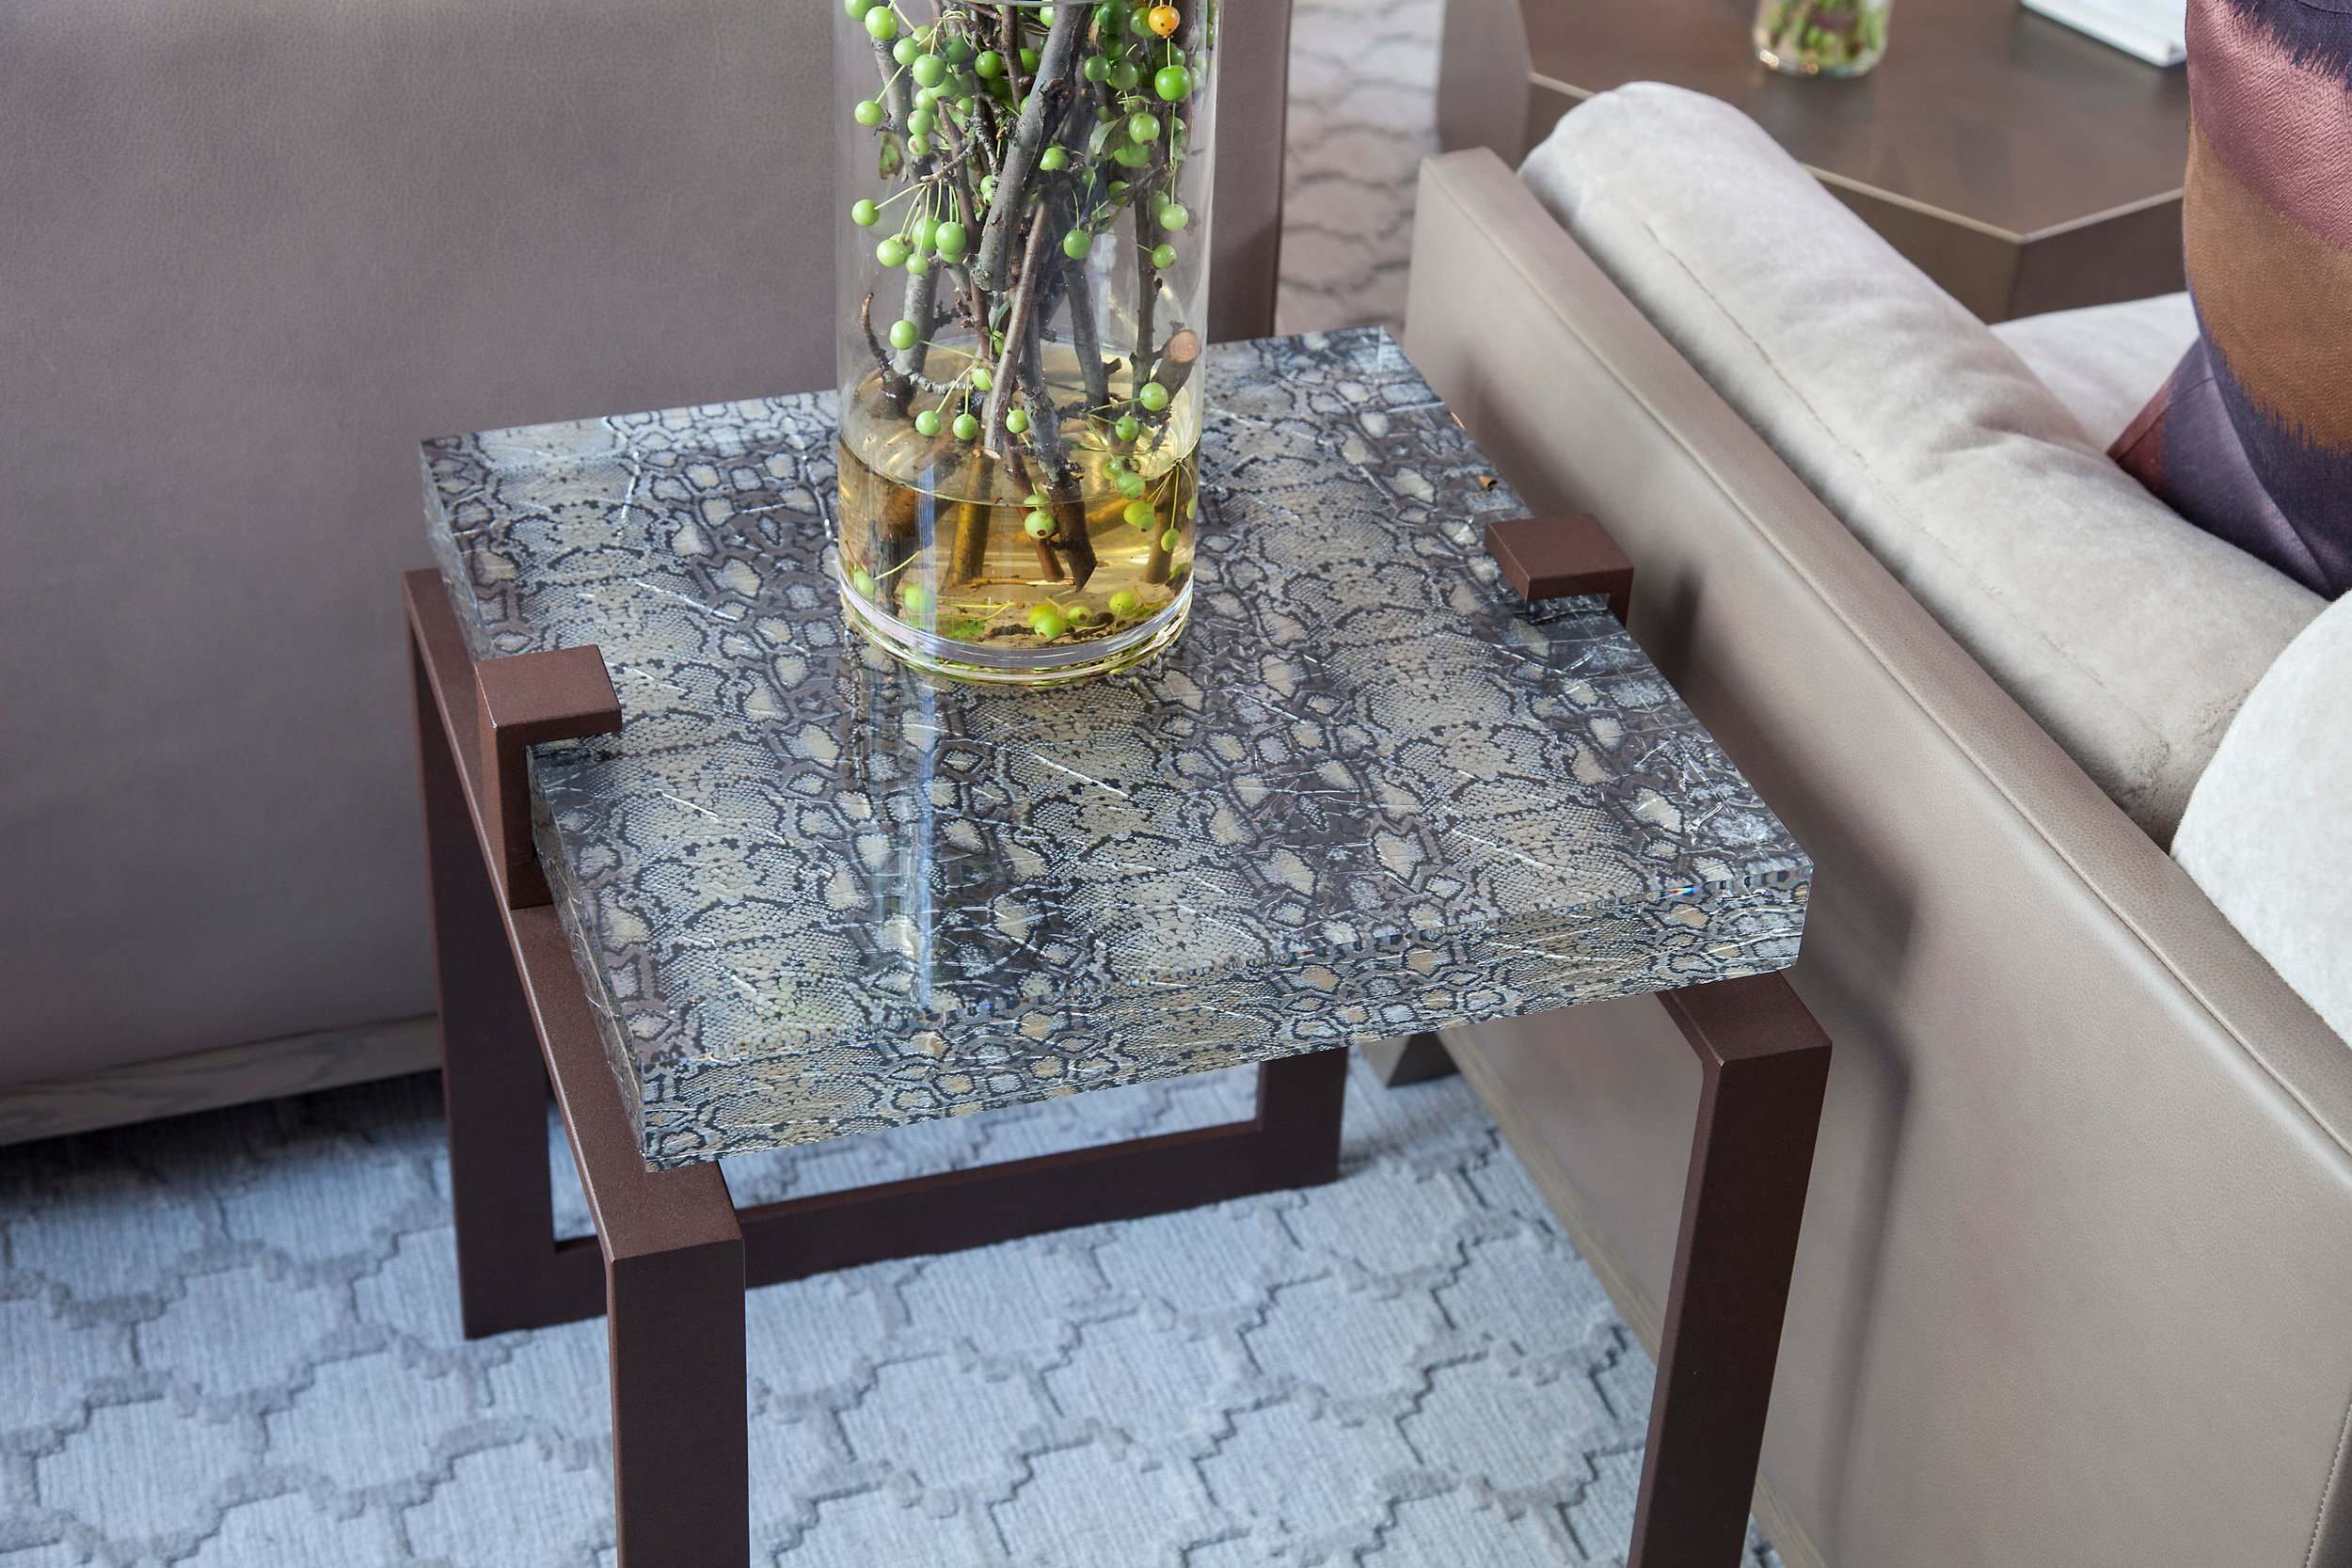 This snake skin and metal vintage glass side table along with fresh crabtree branches add color and texture.